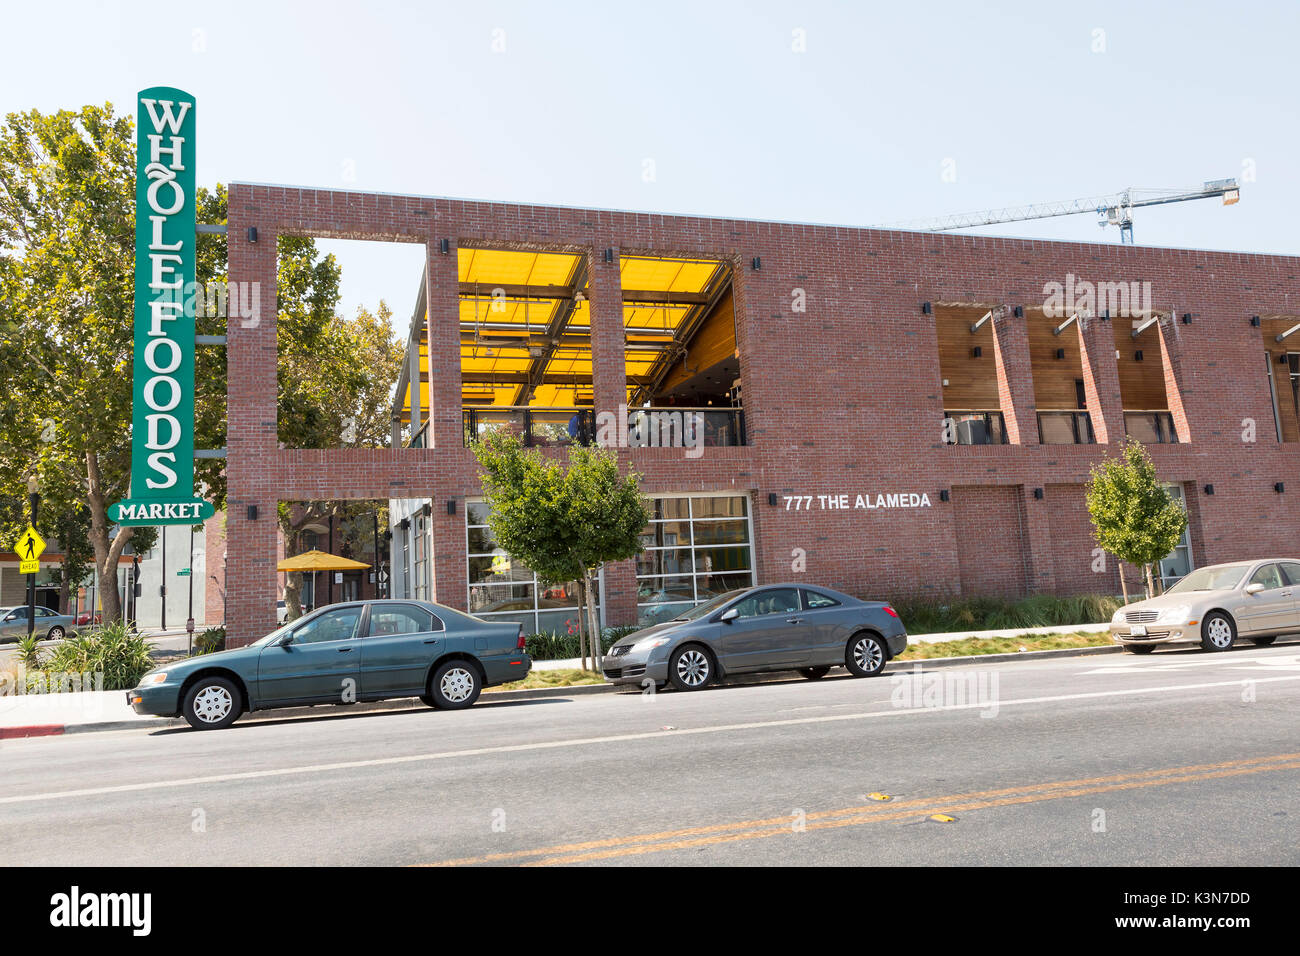 Whole Foods Grocery Store in San Jose, Calif. - Stock Image